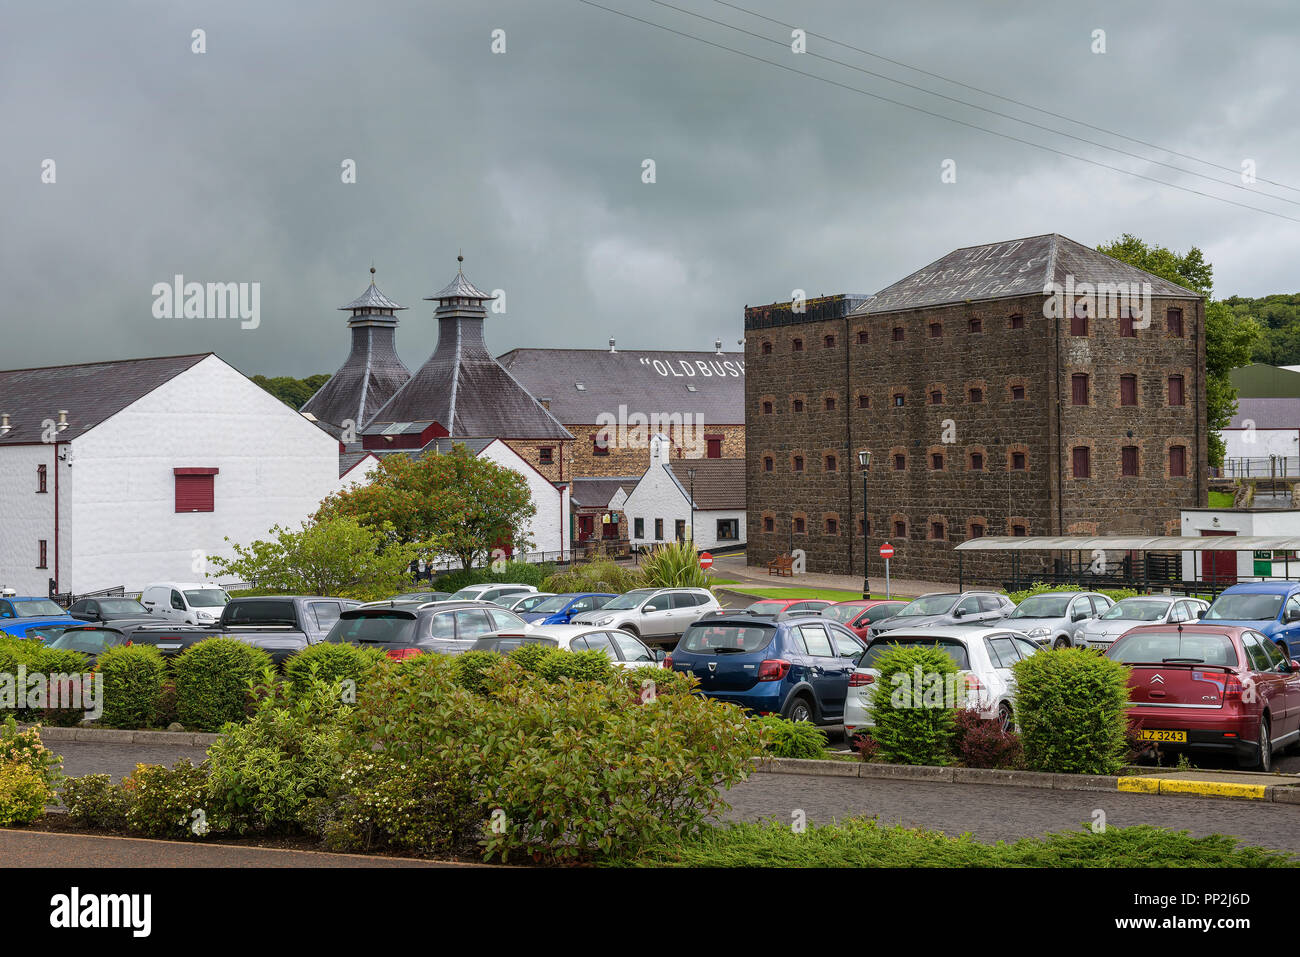 Bushmills, Norther Ireland, United Kingdom - August 6, 2018 : Historic Old Bushmills Distillery known for its irish whiskey blend and a popular touris - Stock Image